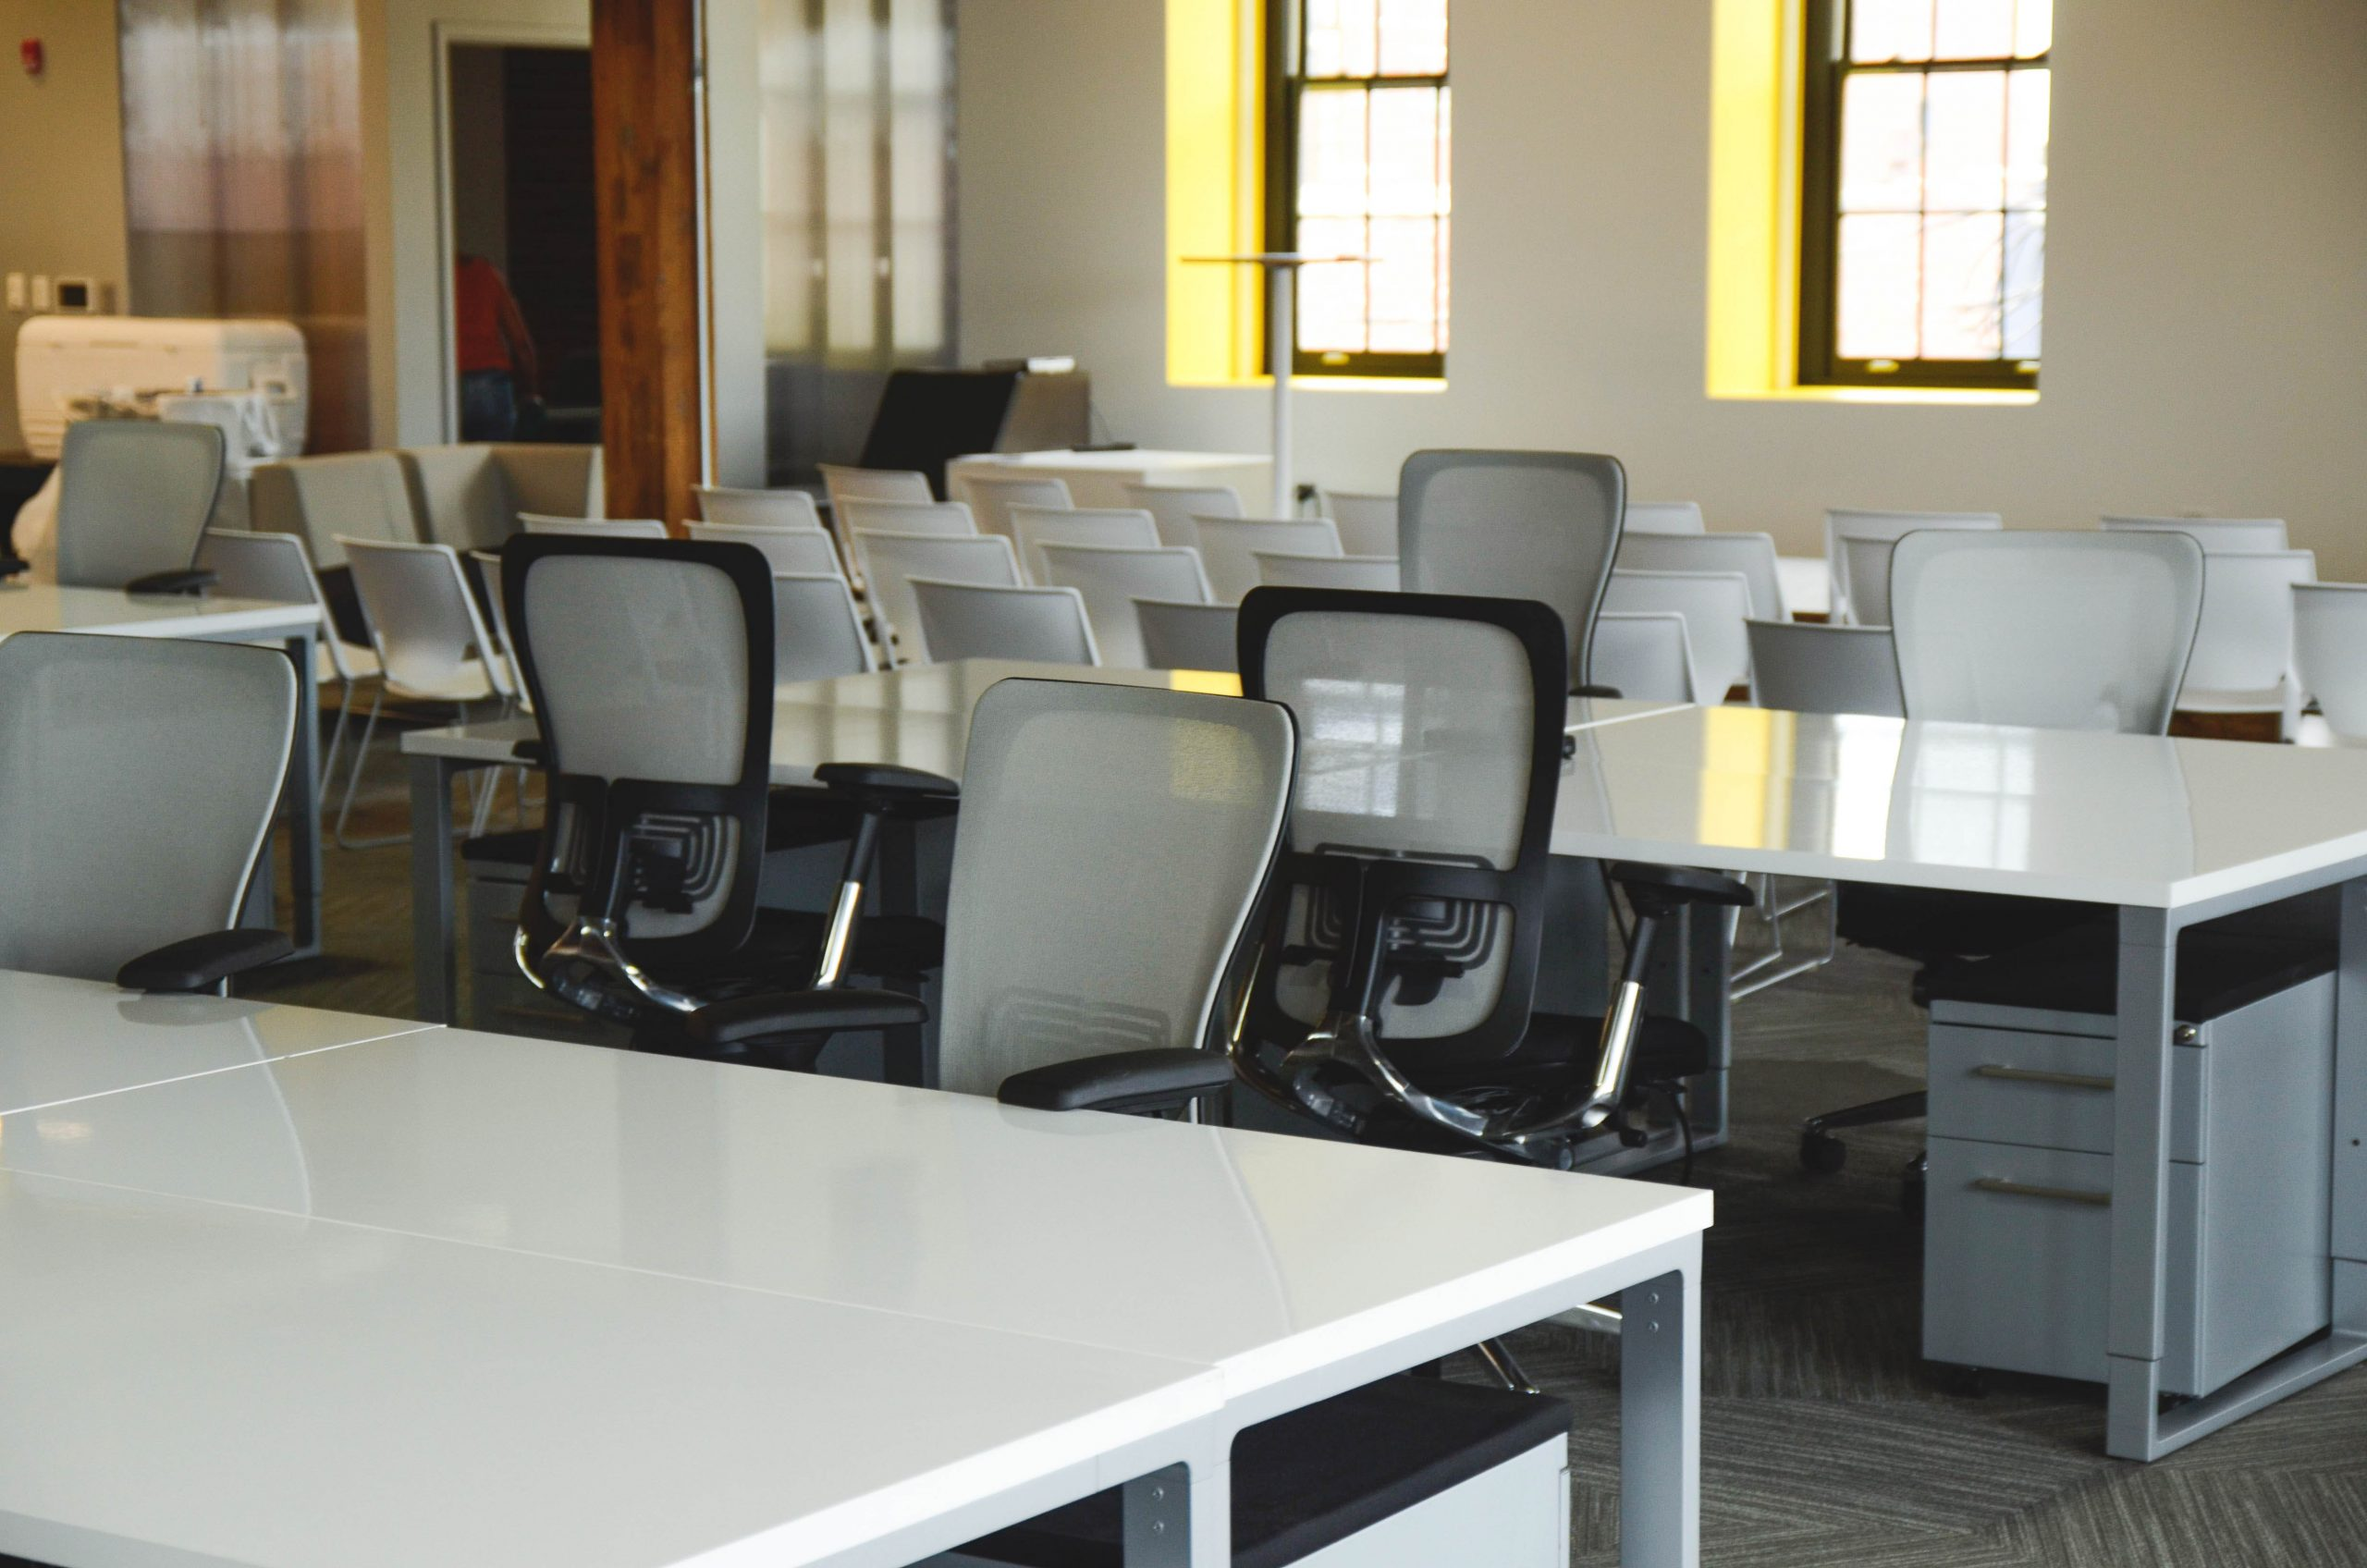 A room full of office tables and chairs